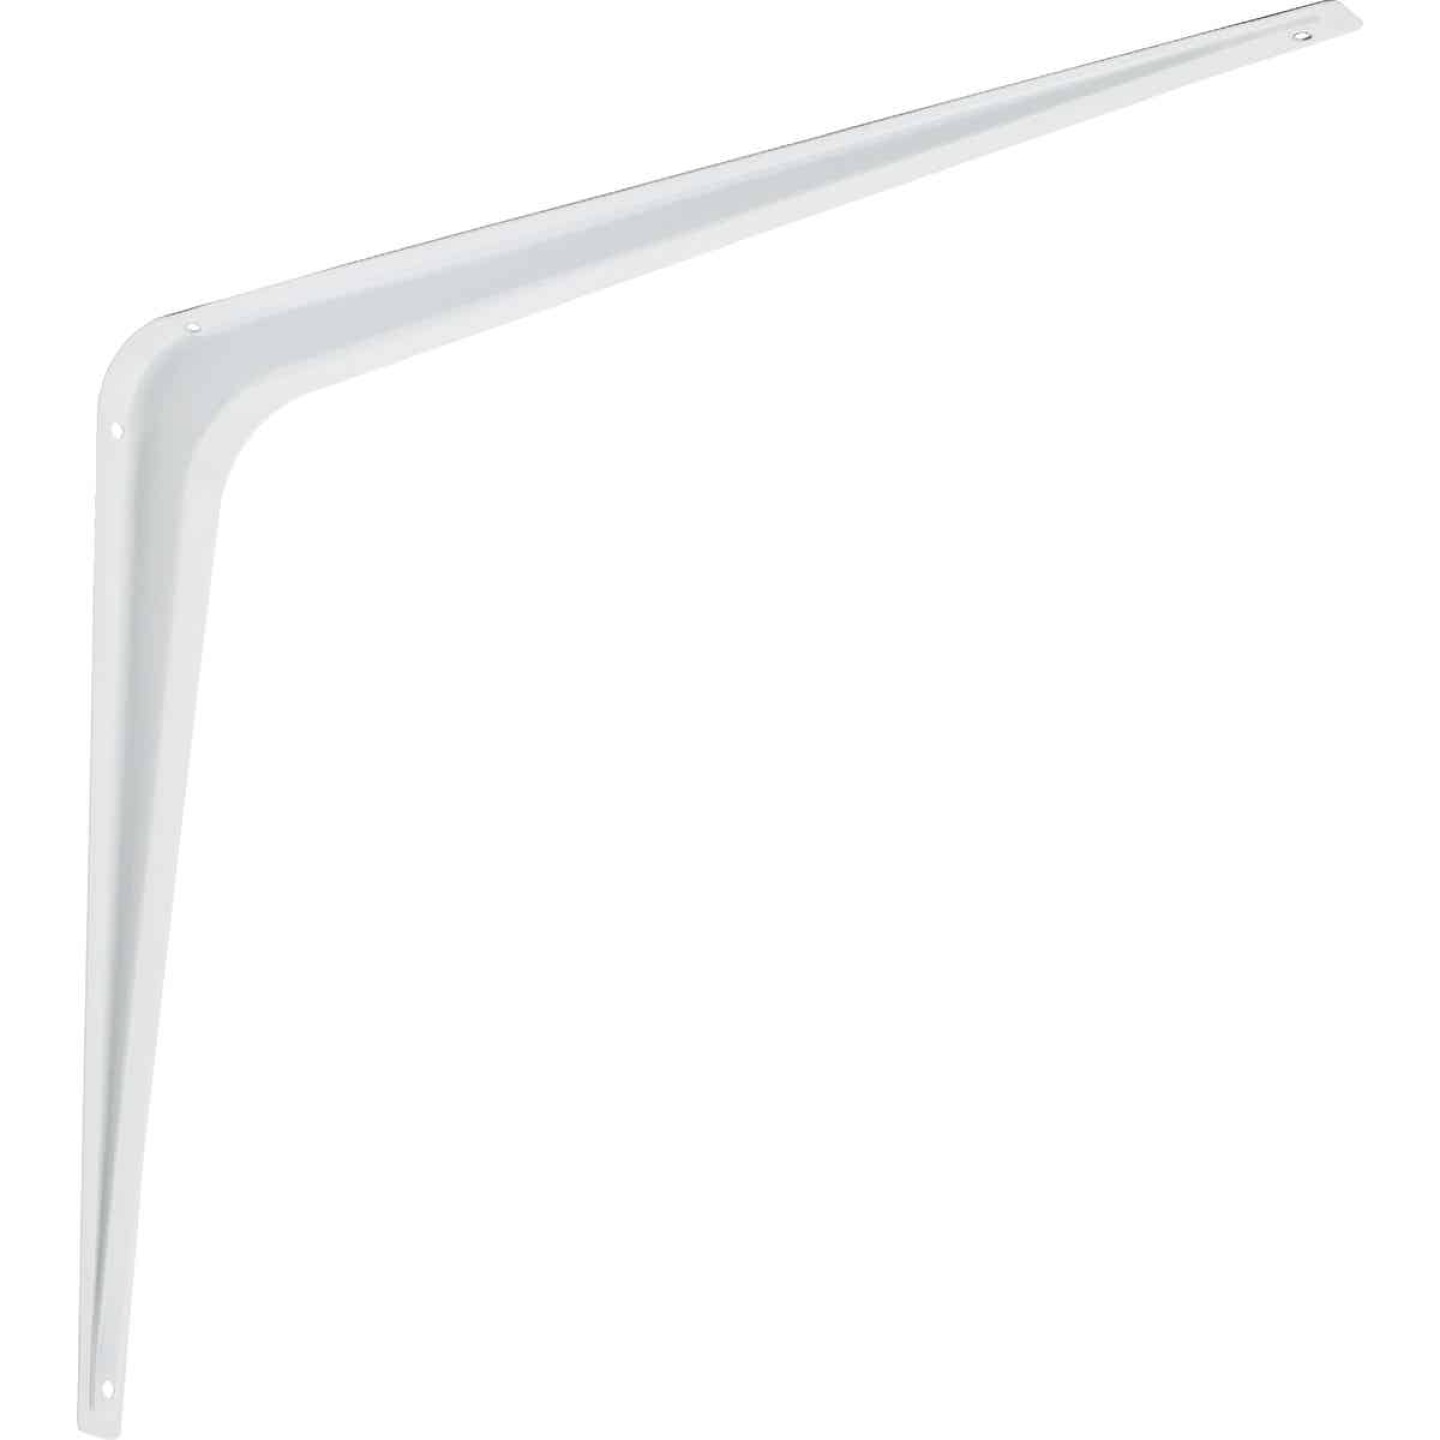 National 211 12 In. D. x 14 In. H. White Steel Shelf Bracket Image 1